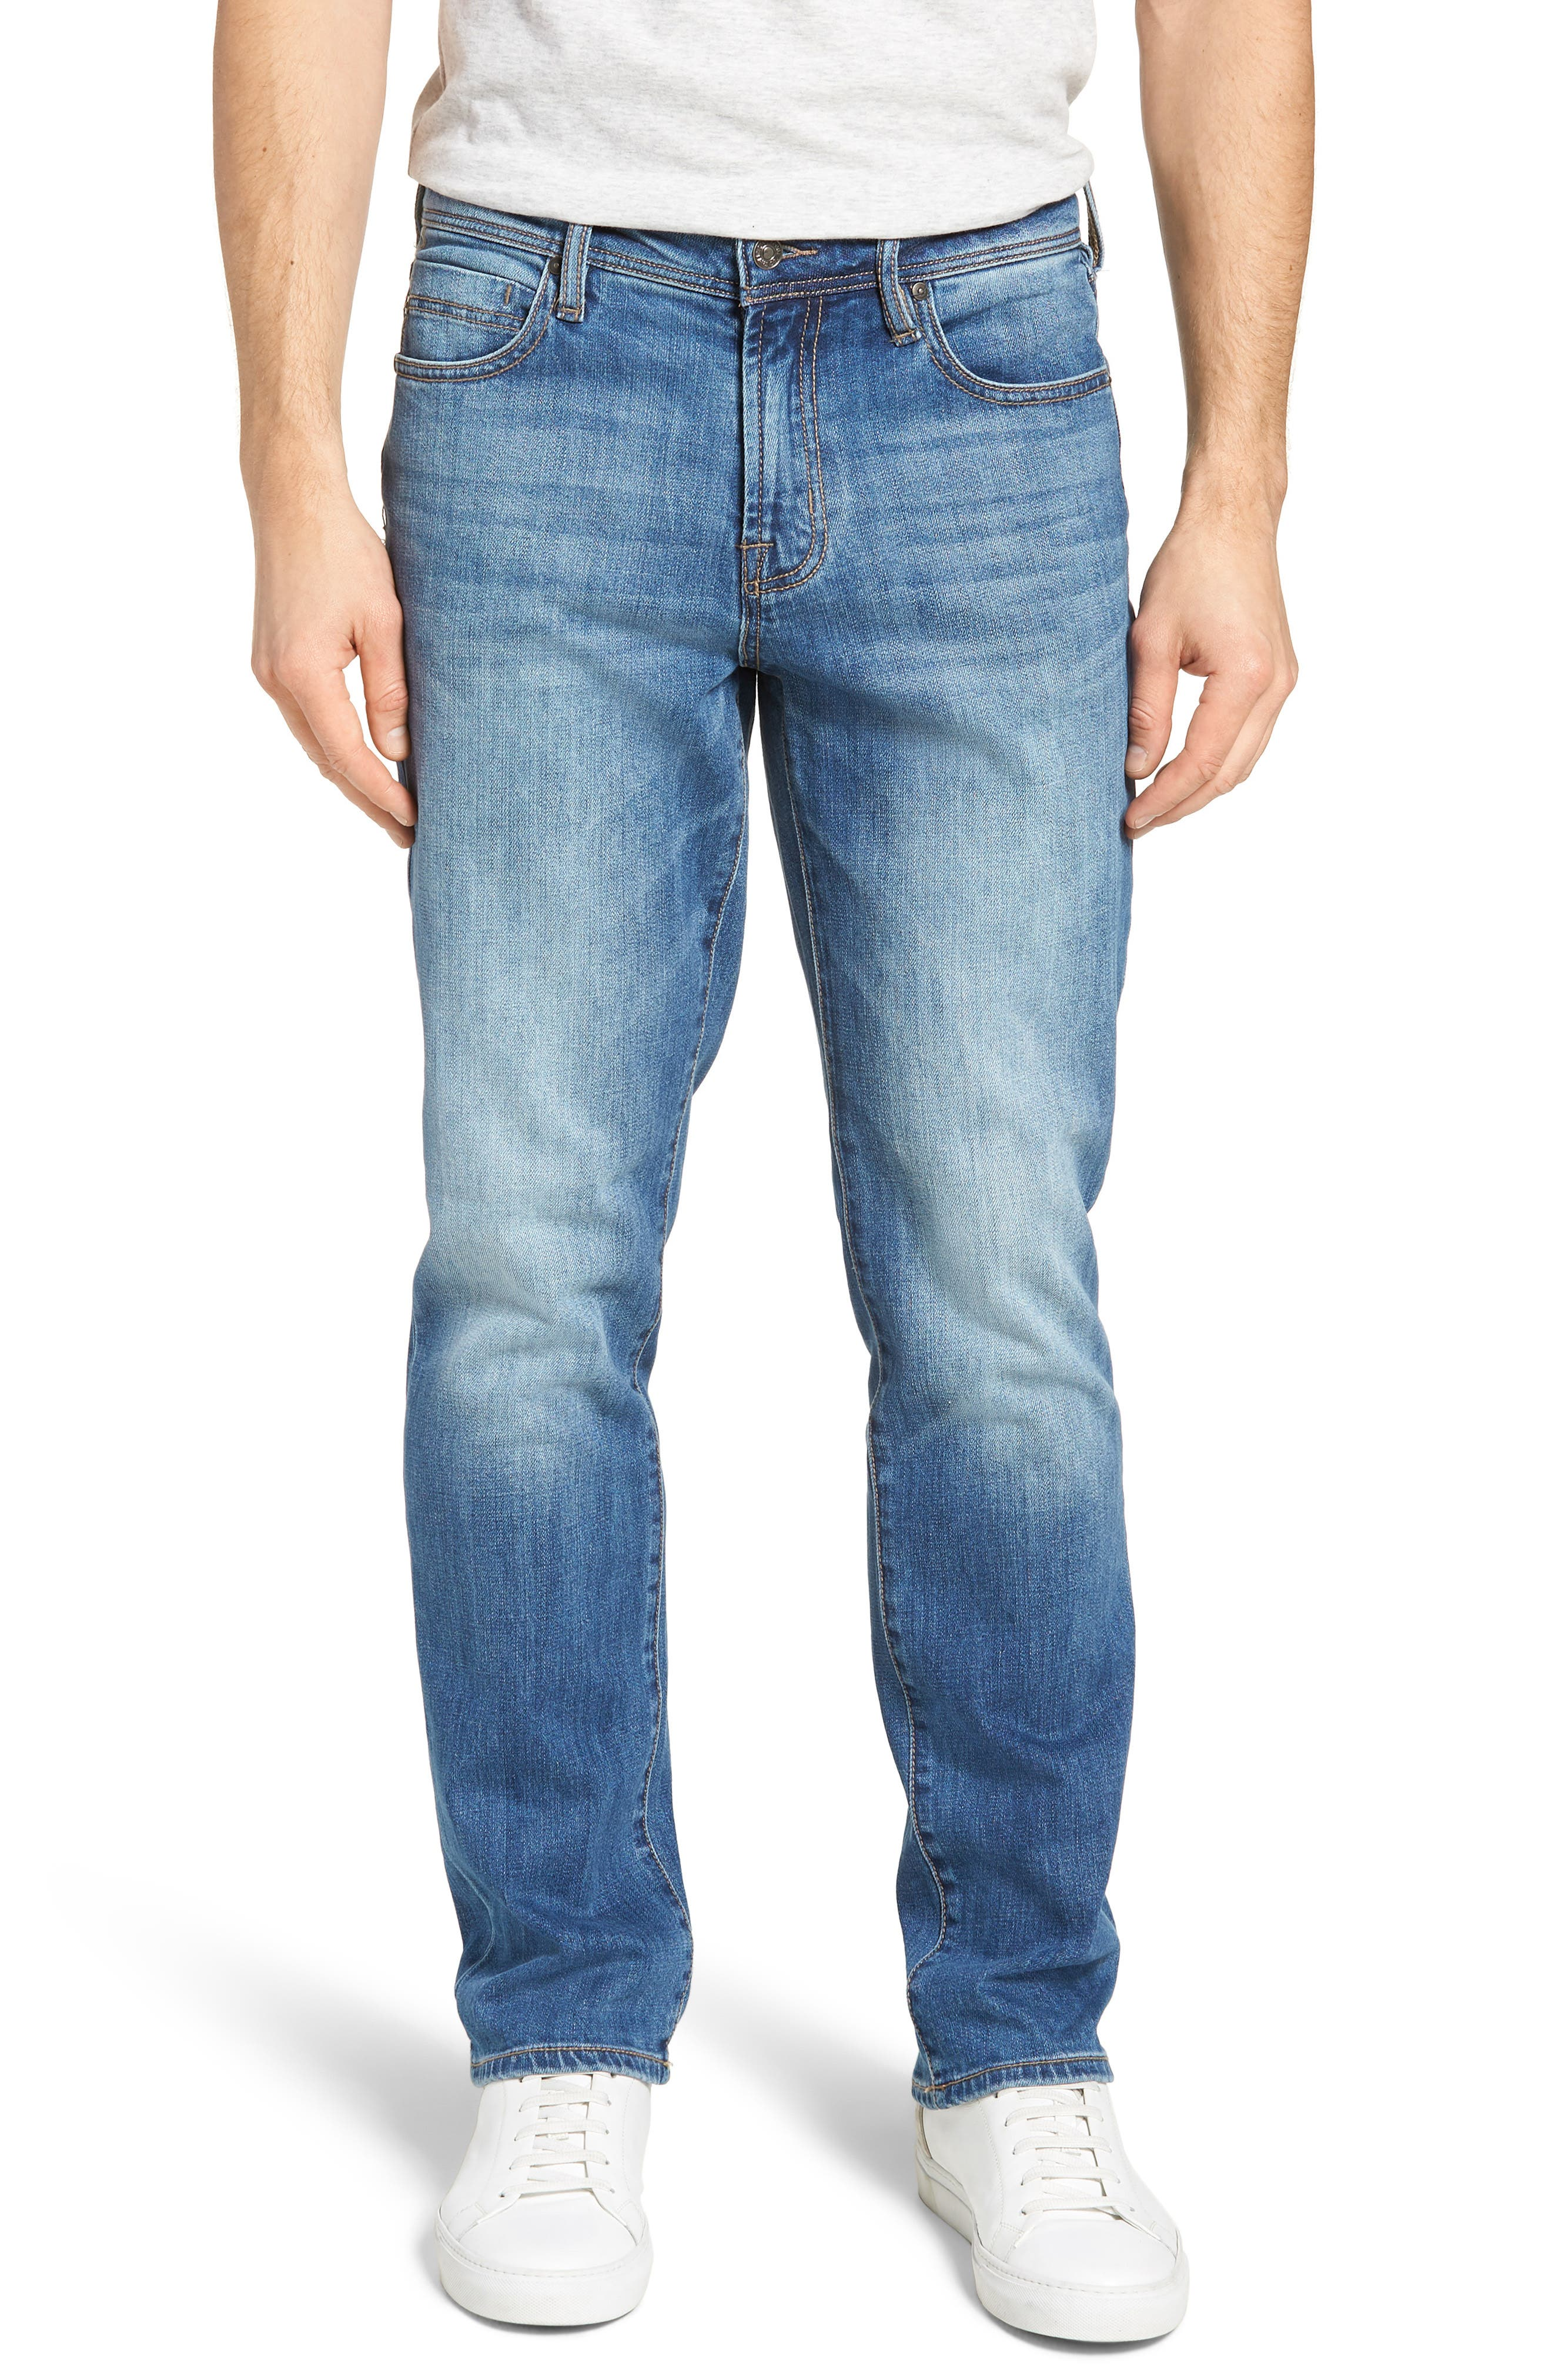 Jeans Co. Relaxed Fit Jeans,                             Main thumbnail 1, color,                             Bryson Vintage Med